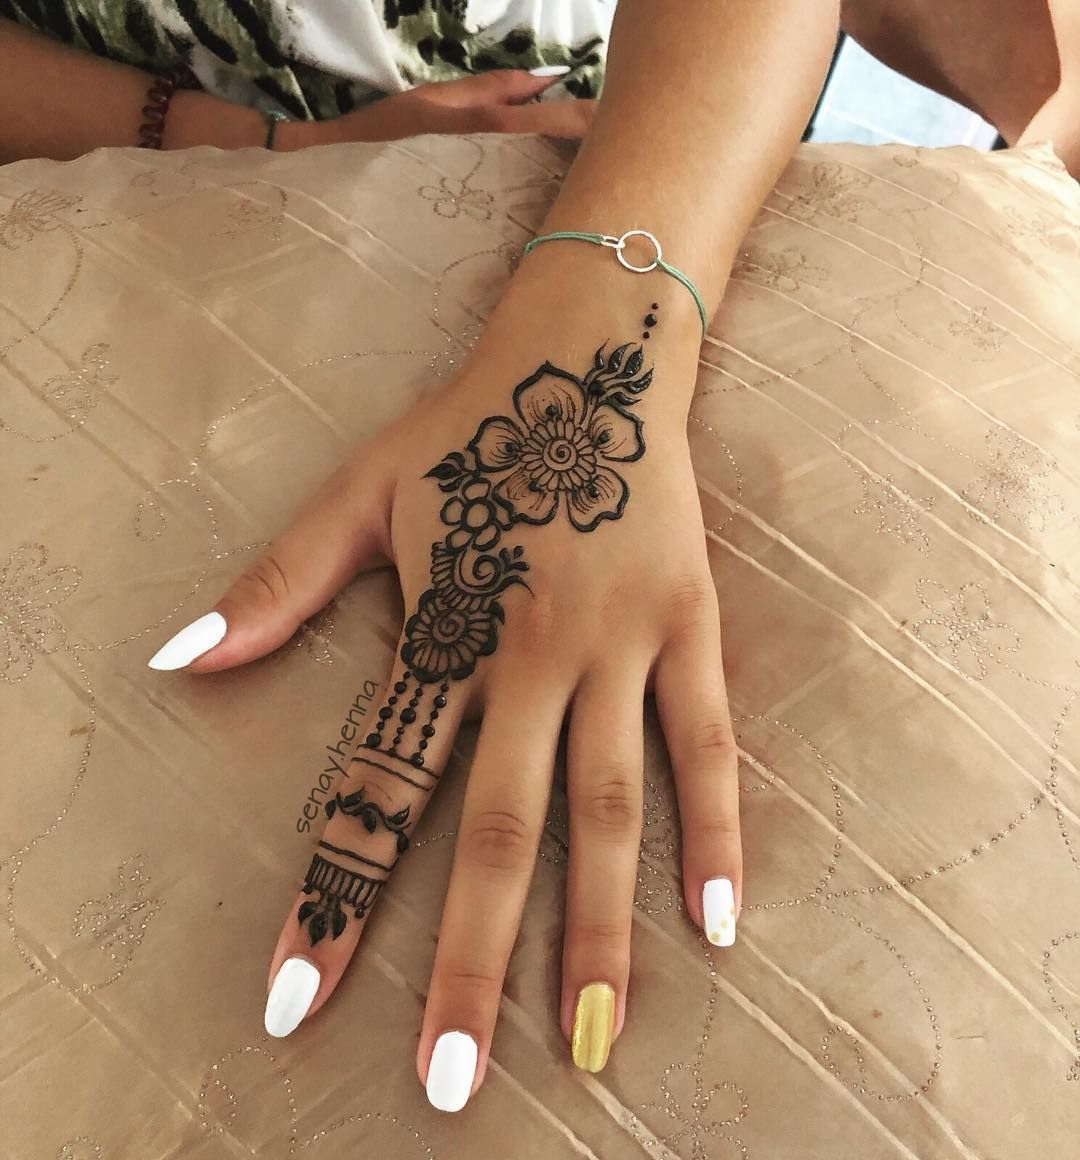 Pin By Hailey Beauty On Mod In 2020 Henna Tattoo Designs Simple Henna Tattoo Designs Hand Henna Tattoo Hand